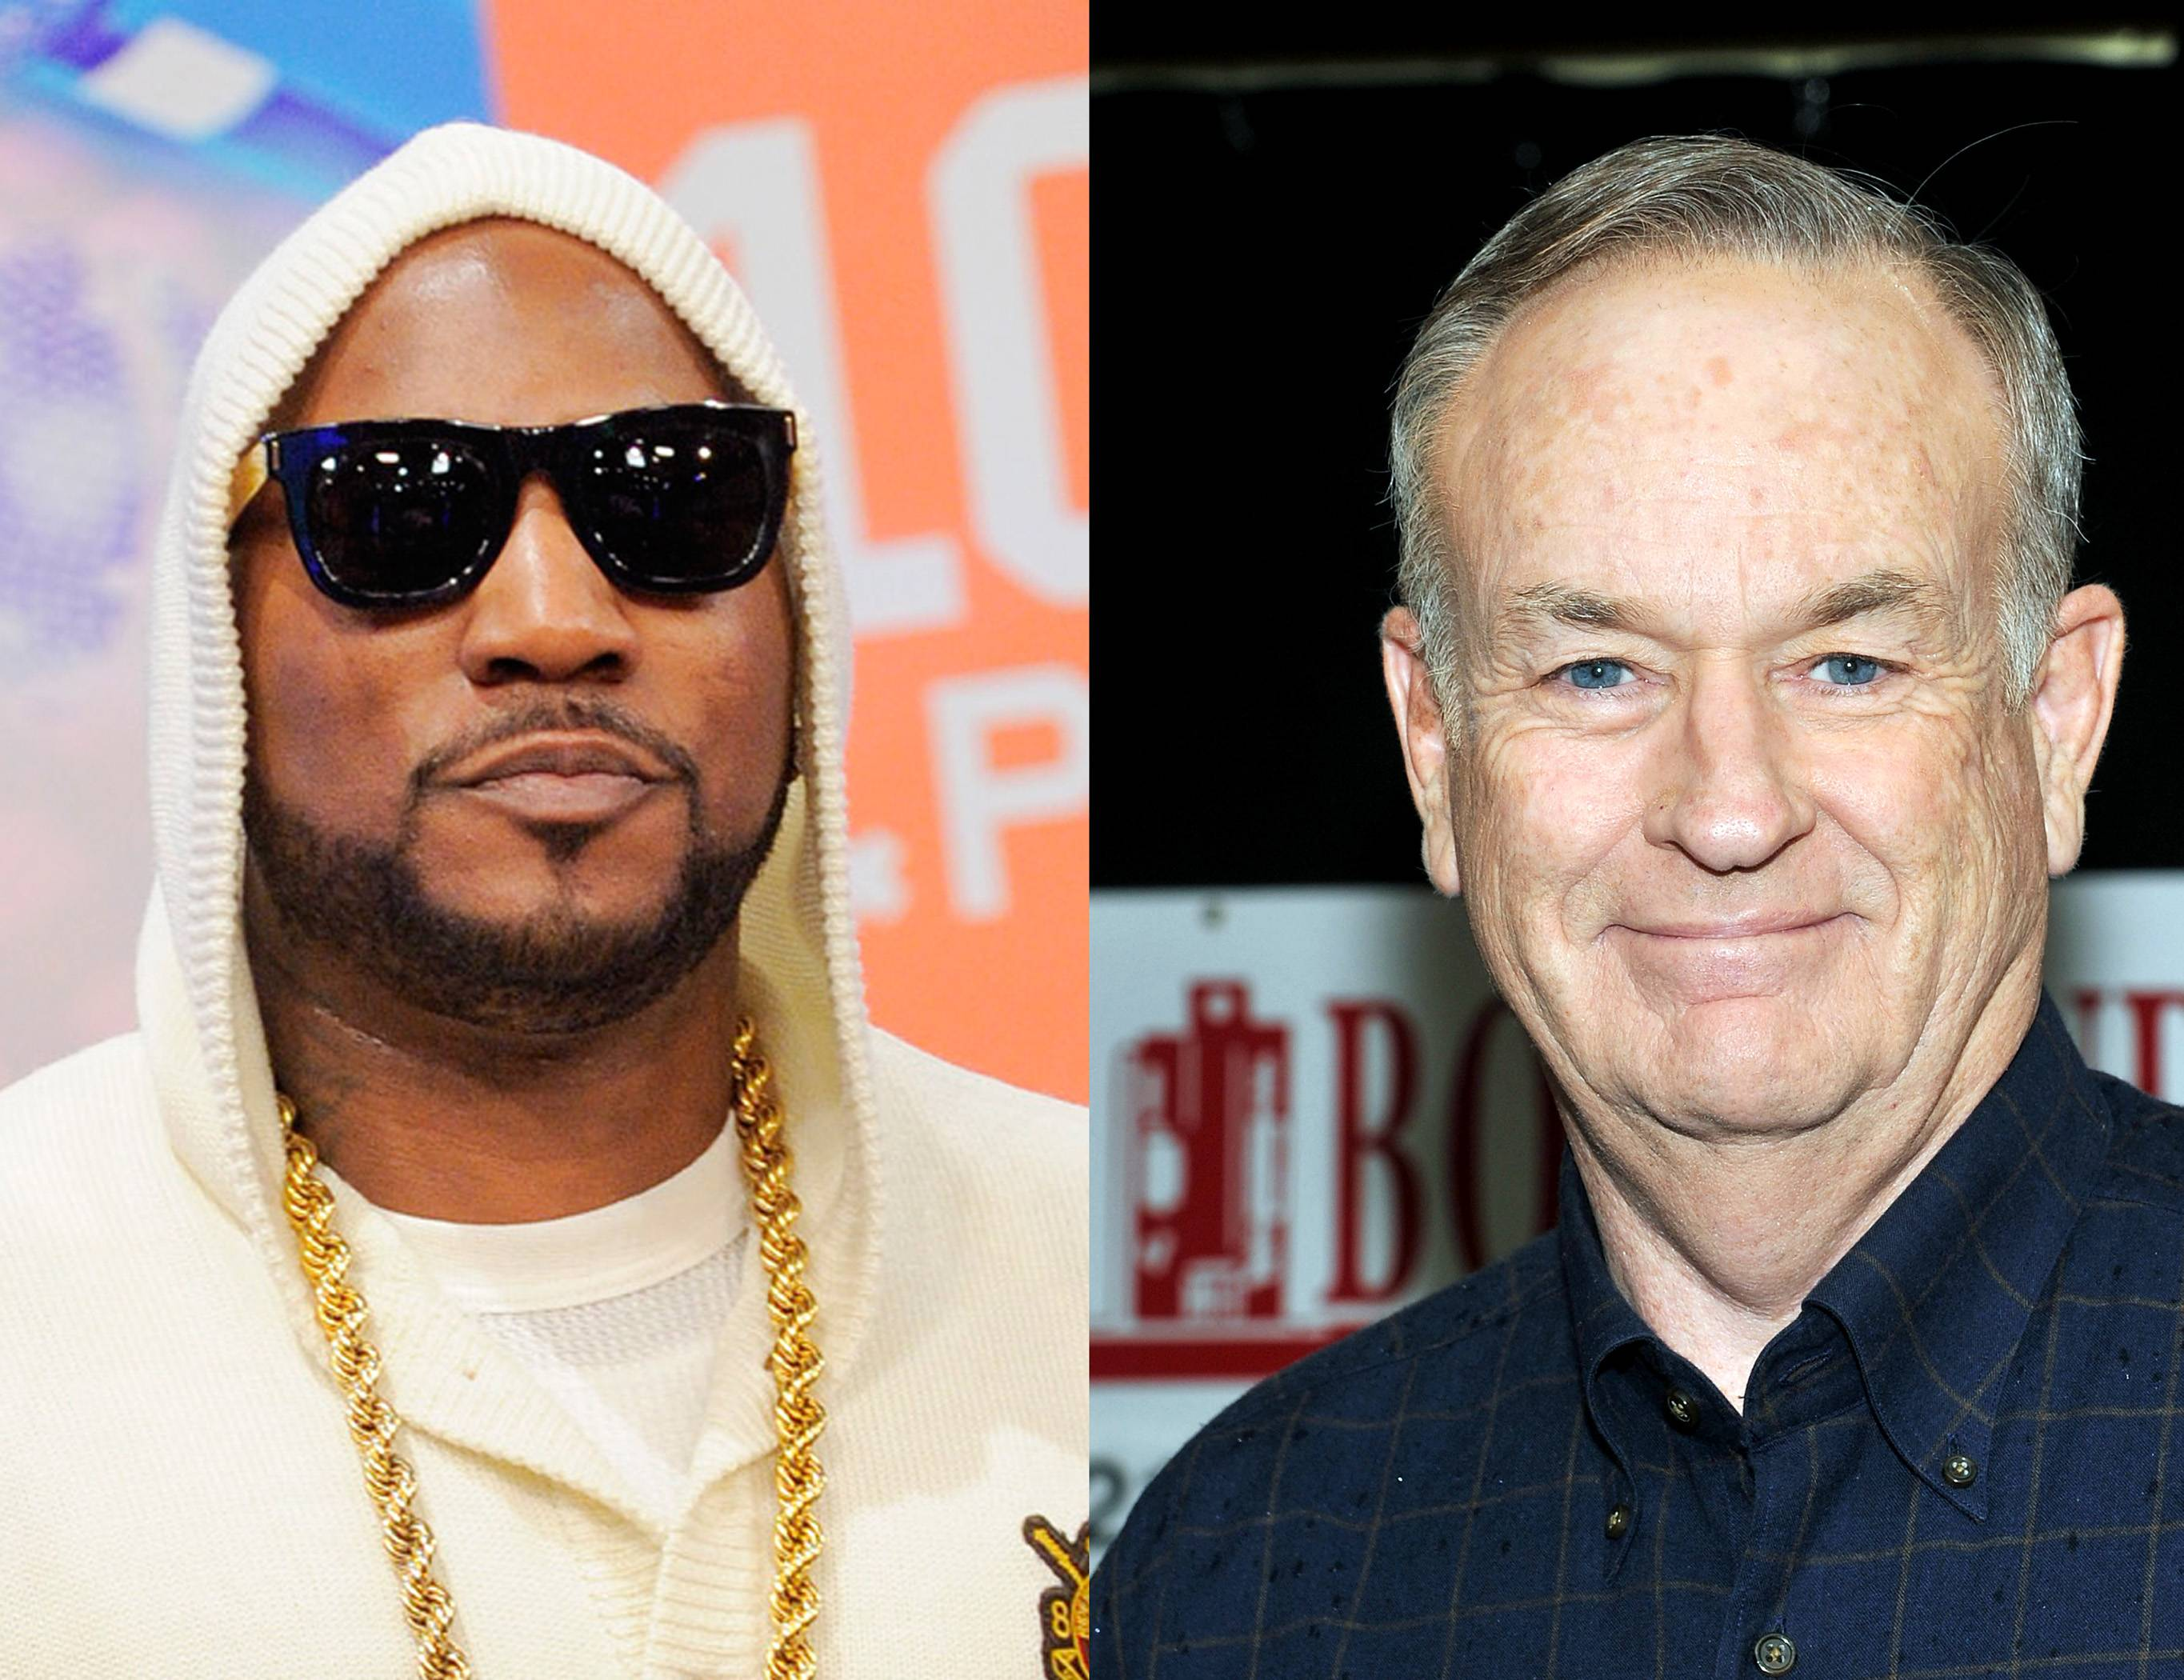 """Young Jeezy vs. Bill O'Reilly - Bill-O struck again in 2009, when he lit into Jeezy for his celebratory performance of """"My President Is Black"""" in Washingotn, D.C. when Barack Obama was inaugurated. He called it """"hateful"""" and offensive. Jeezy responded by adding an additional verse to the song, going at O'Reilly.  (Photos from left to right: John Ricard / BET, Mike Coppola/Getty Images)"""